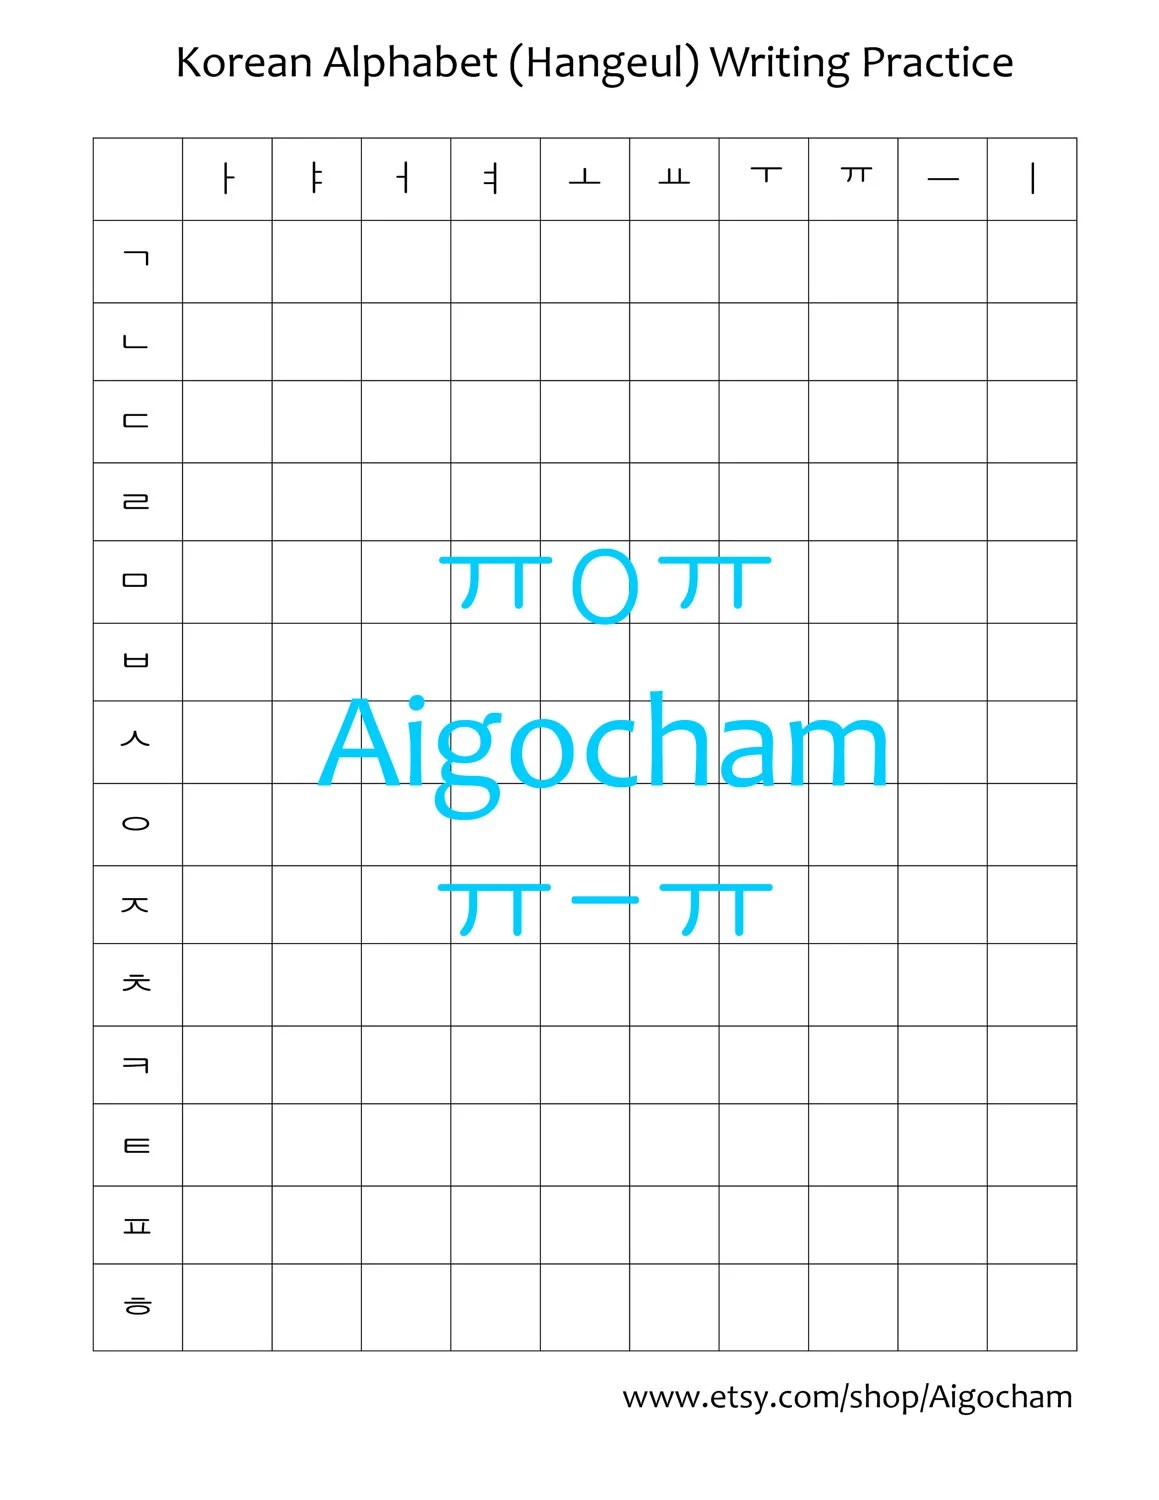 Korean Alphabet Writing Practice Worksheet 1 By Aigocham